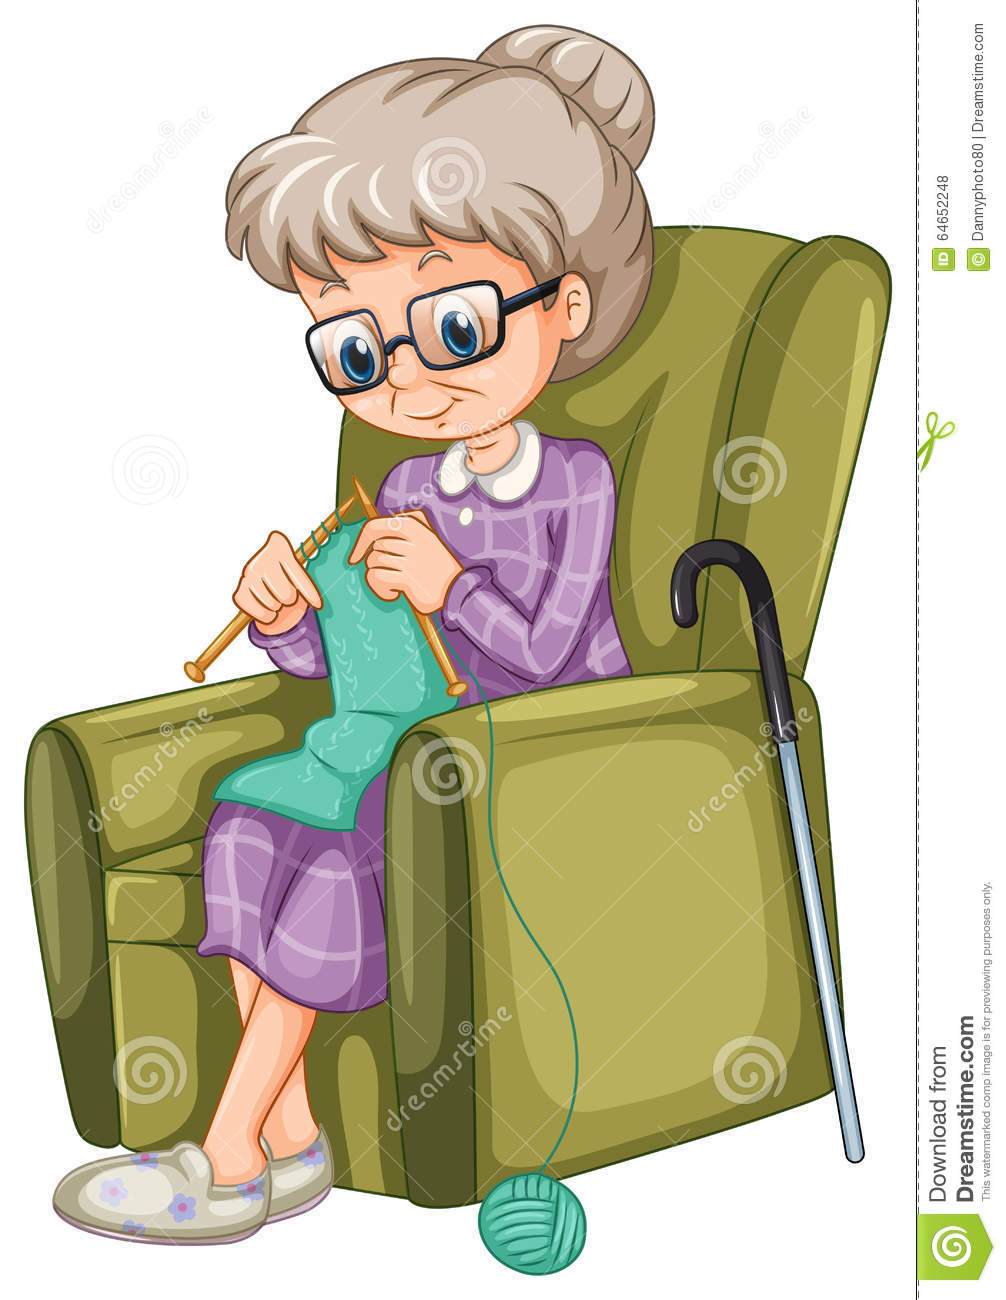 Old Lady Knitting Images : Old lady knitting on the chair stock vector image